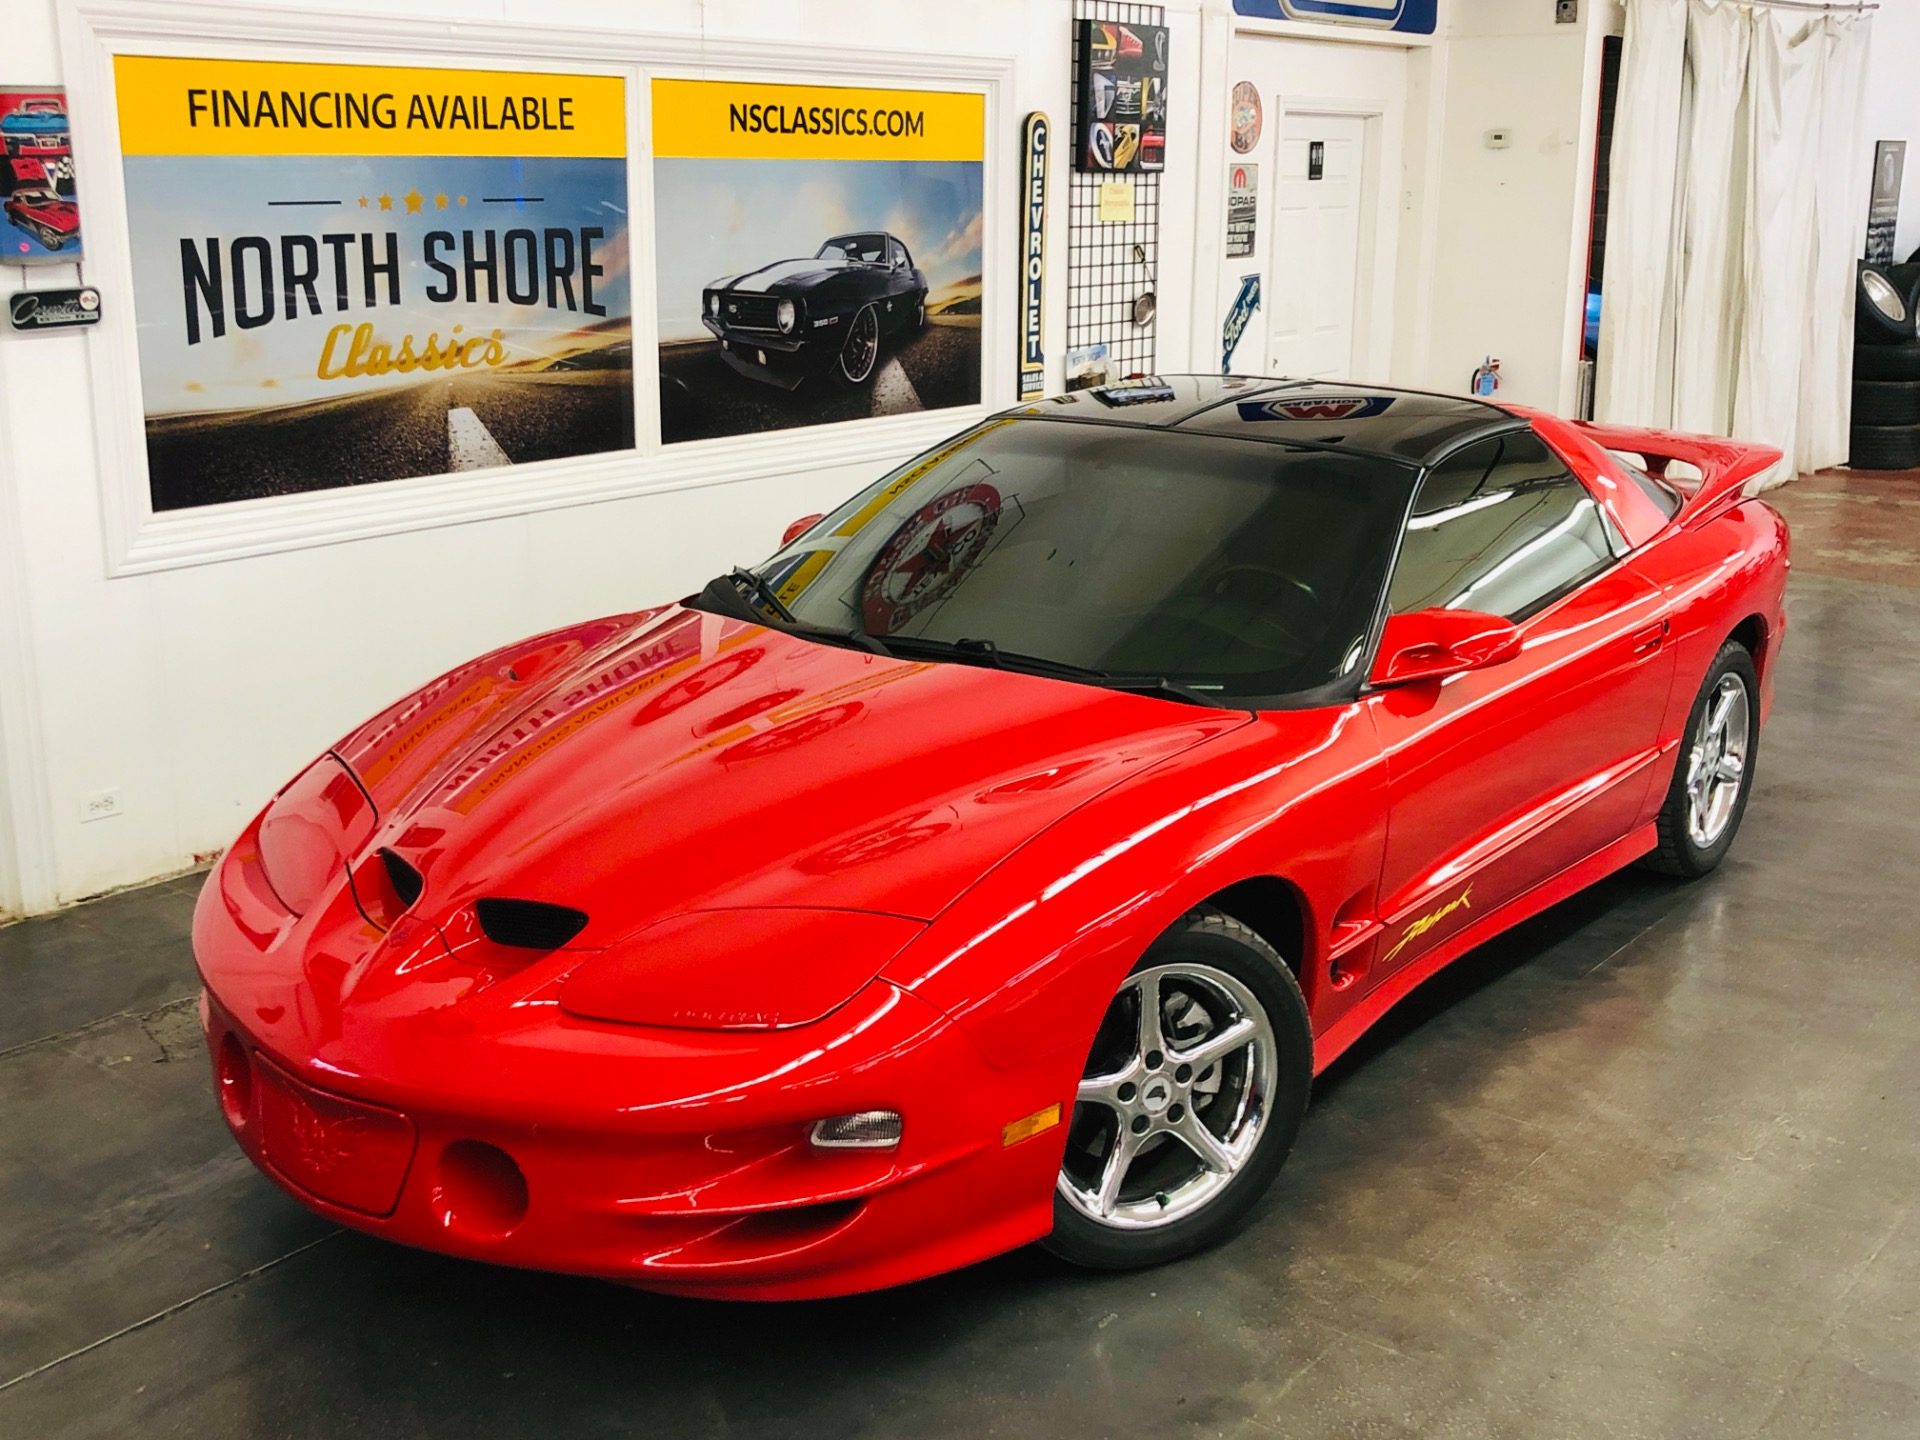 Used 2001 Pontiac Firebird - FIREHAWK - 6 SPEED - LOW MILES - EXCELLENT CONDITION - SEE VIDEO | Mundelein, IL